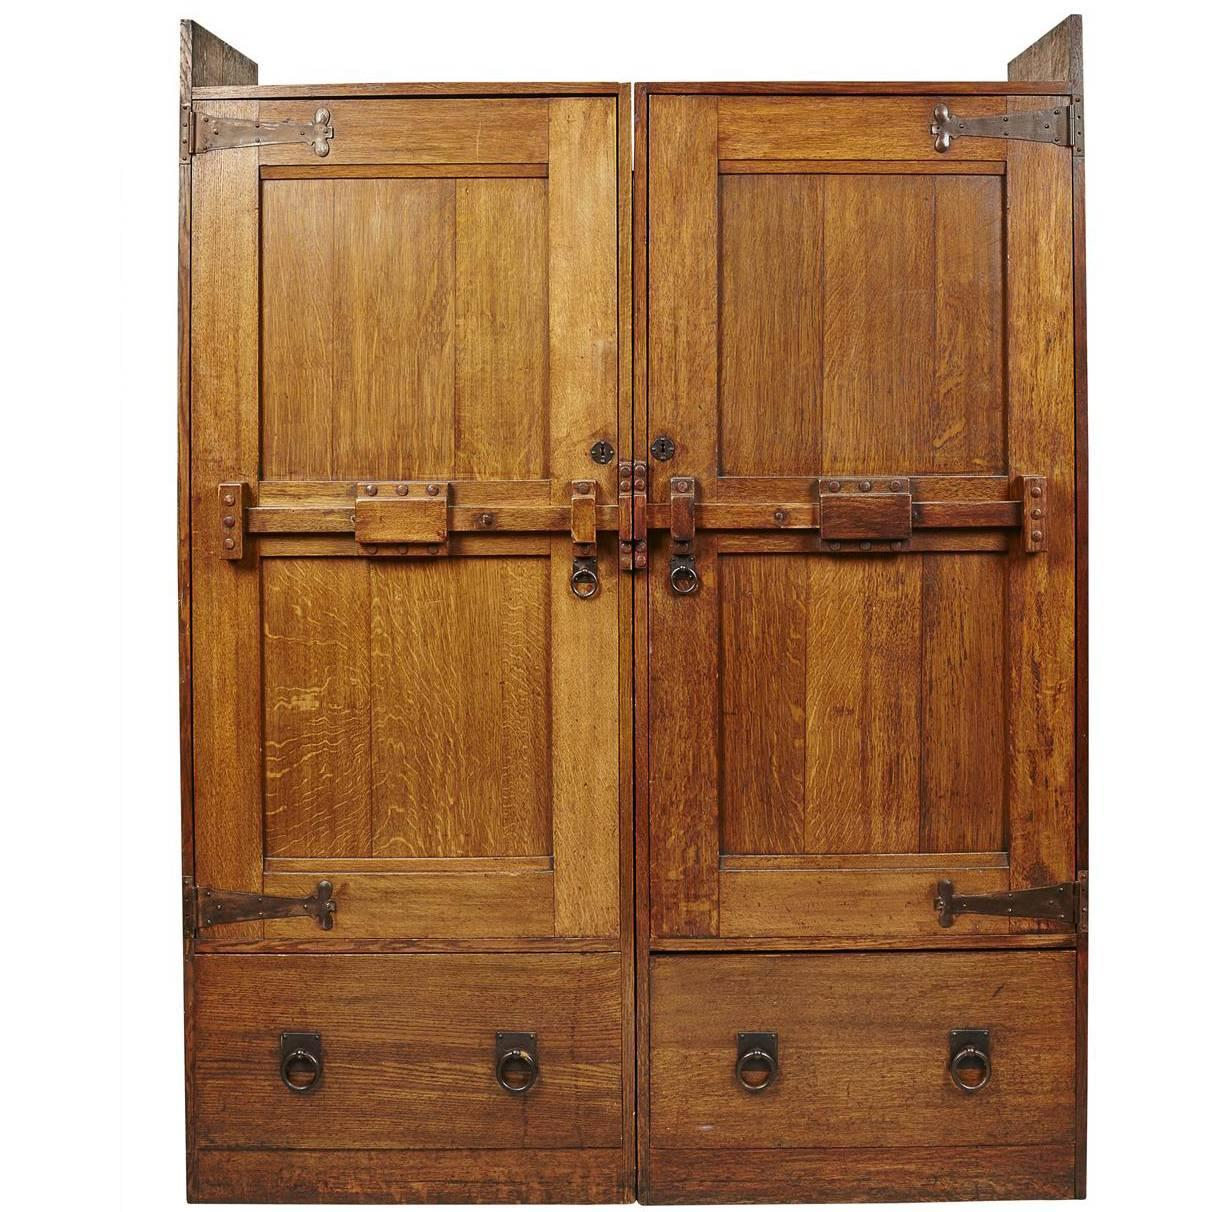 antique french arts and crafts inlaid oak armoire wardrobe at stdibs - arts  crafts oak wardrobe by wylie  lochhead